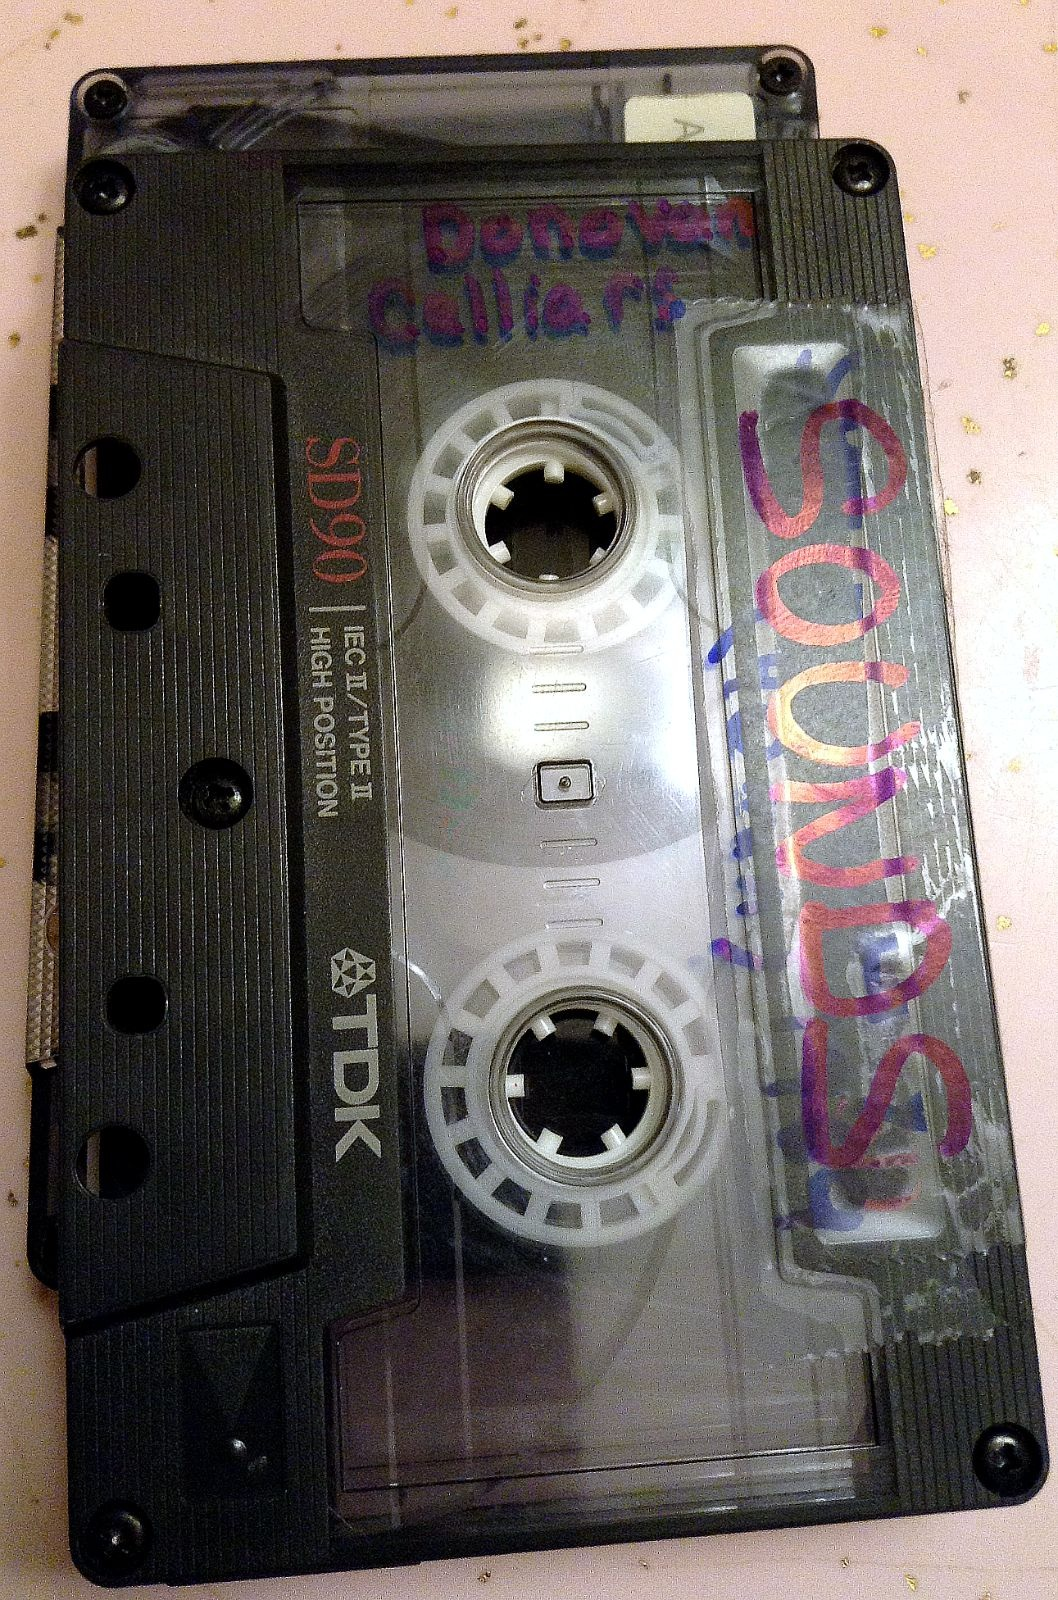 Celliars's Tapes